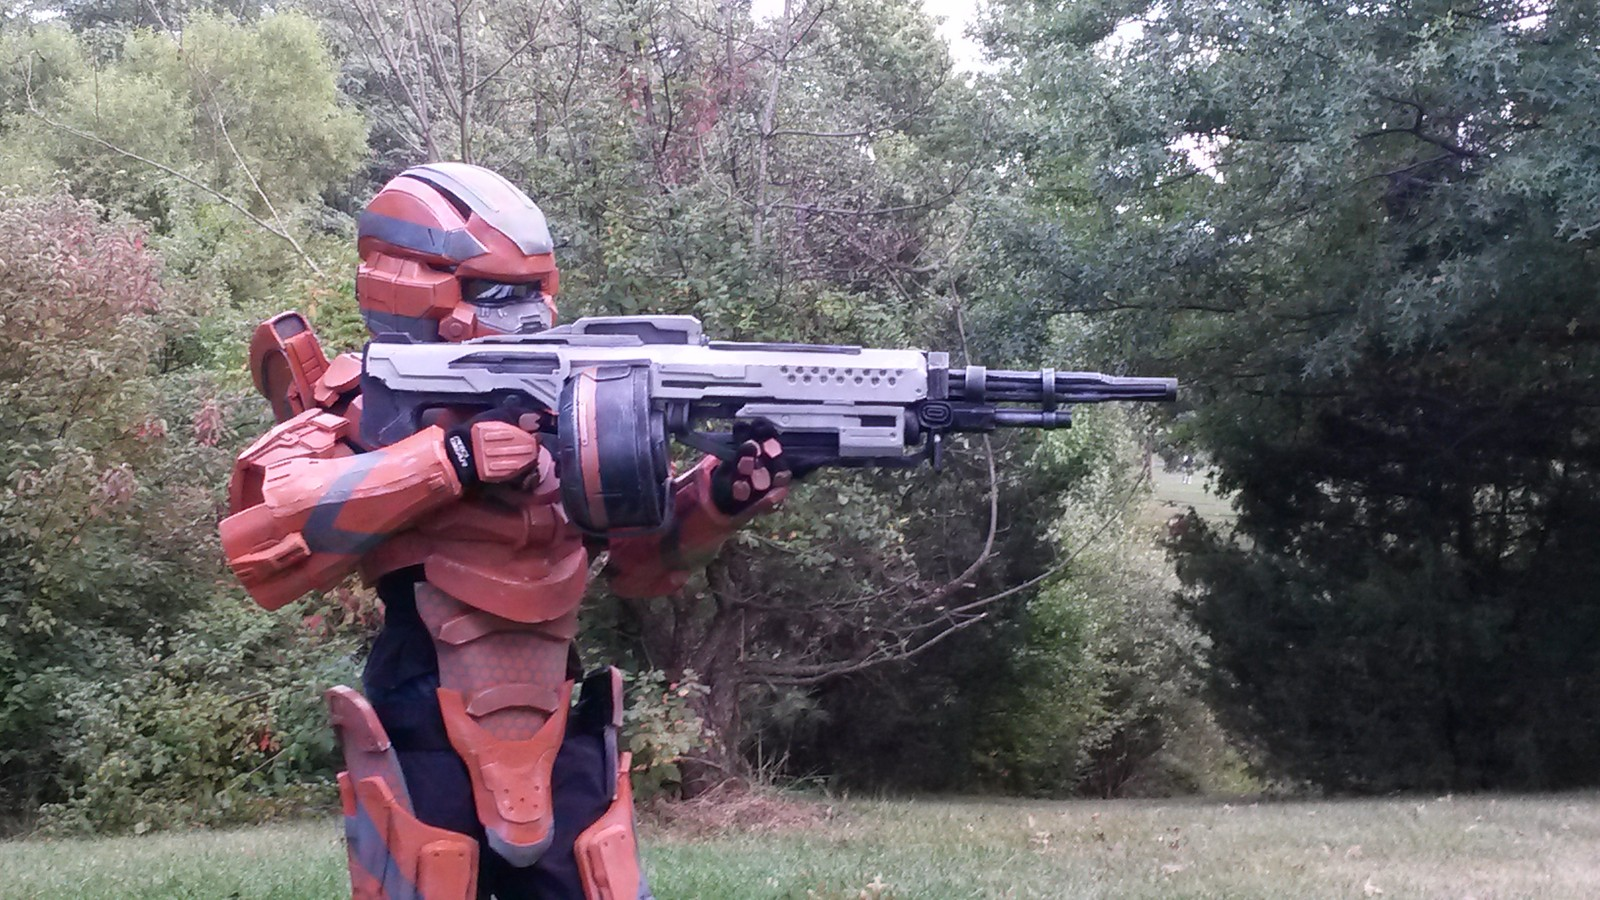 Halo 4 Master Chief and Warrior 2013 Halloween Costume Contest Entry-1